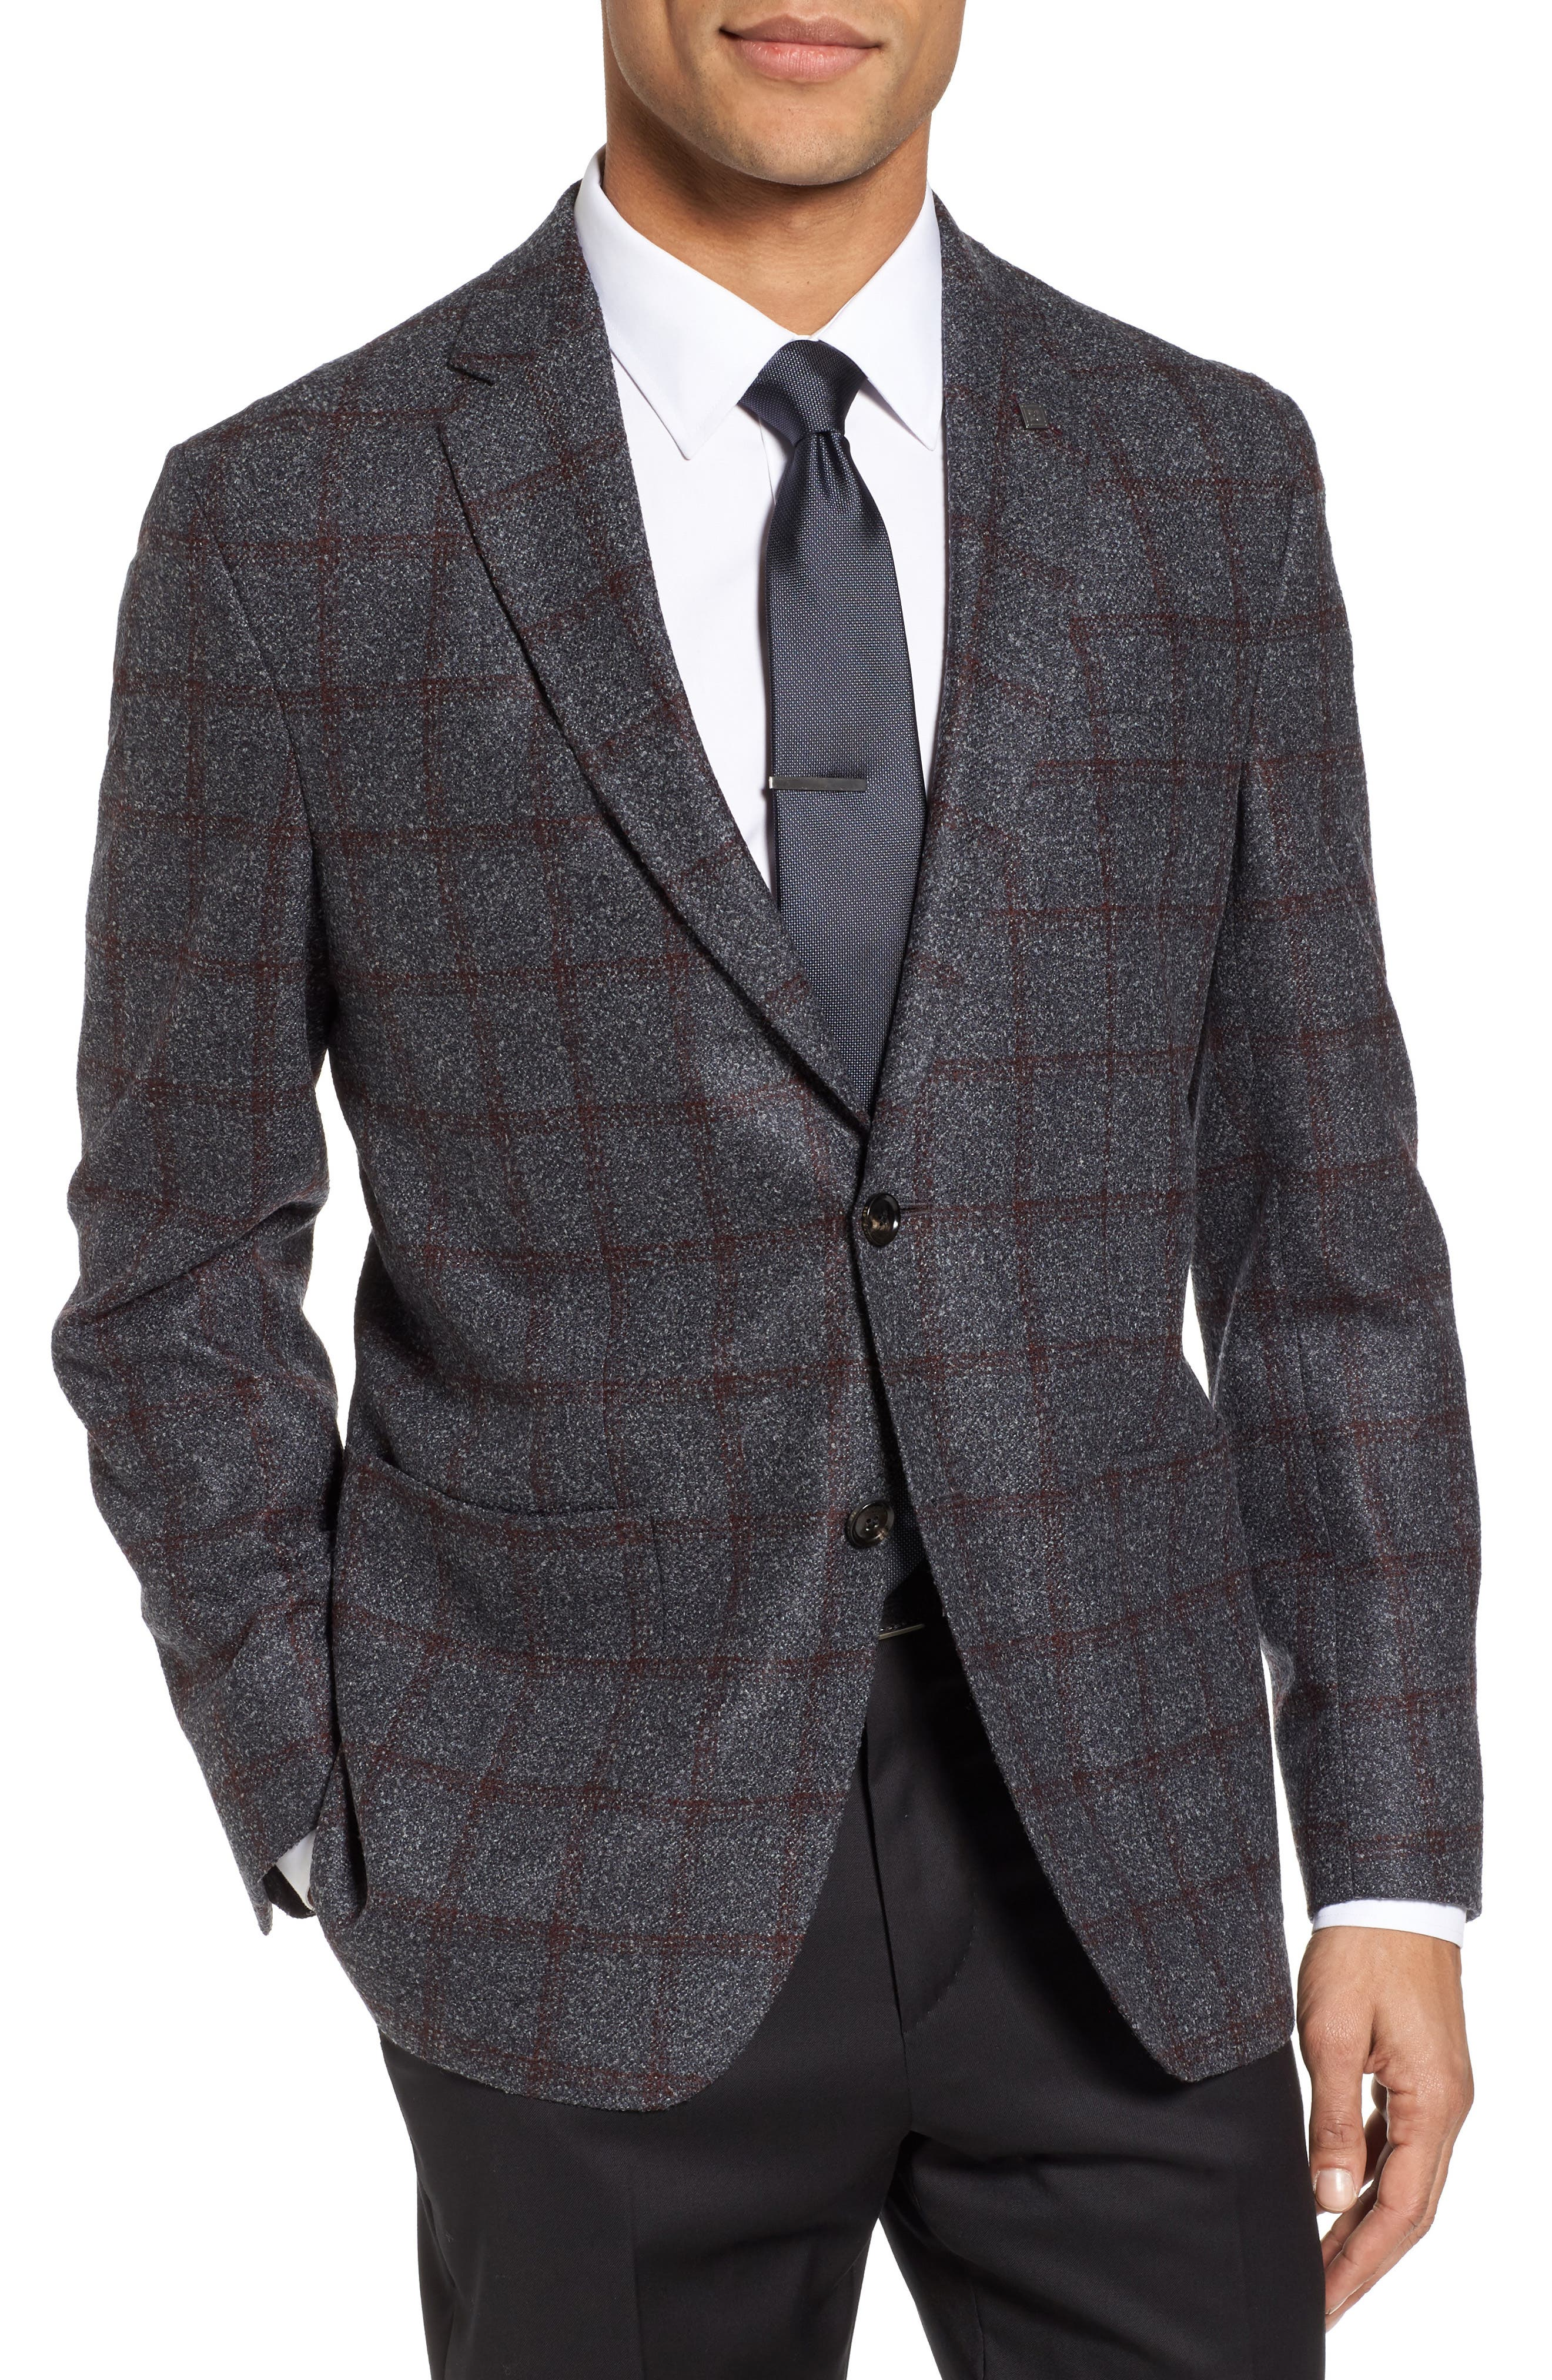 Kyle Trim Fit Windowpane Wool Blend Sport Coat,                             Main thumbnail 1, color,                             020